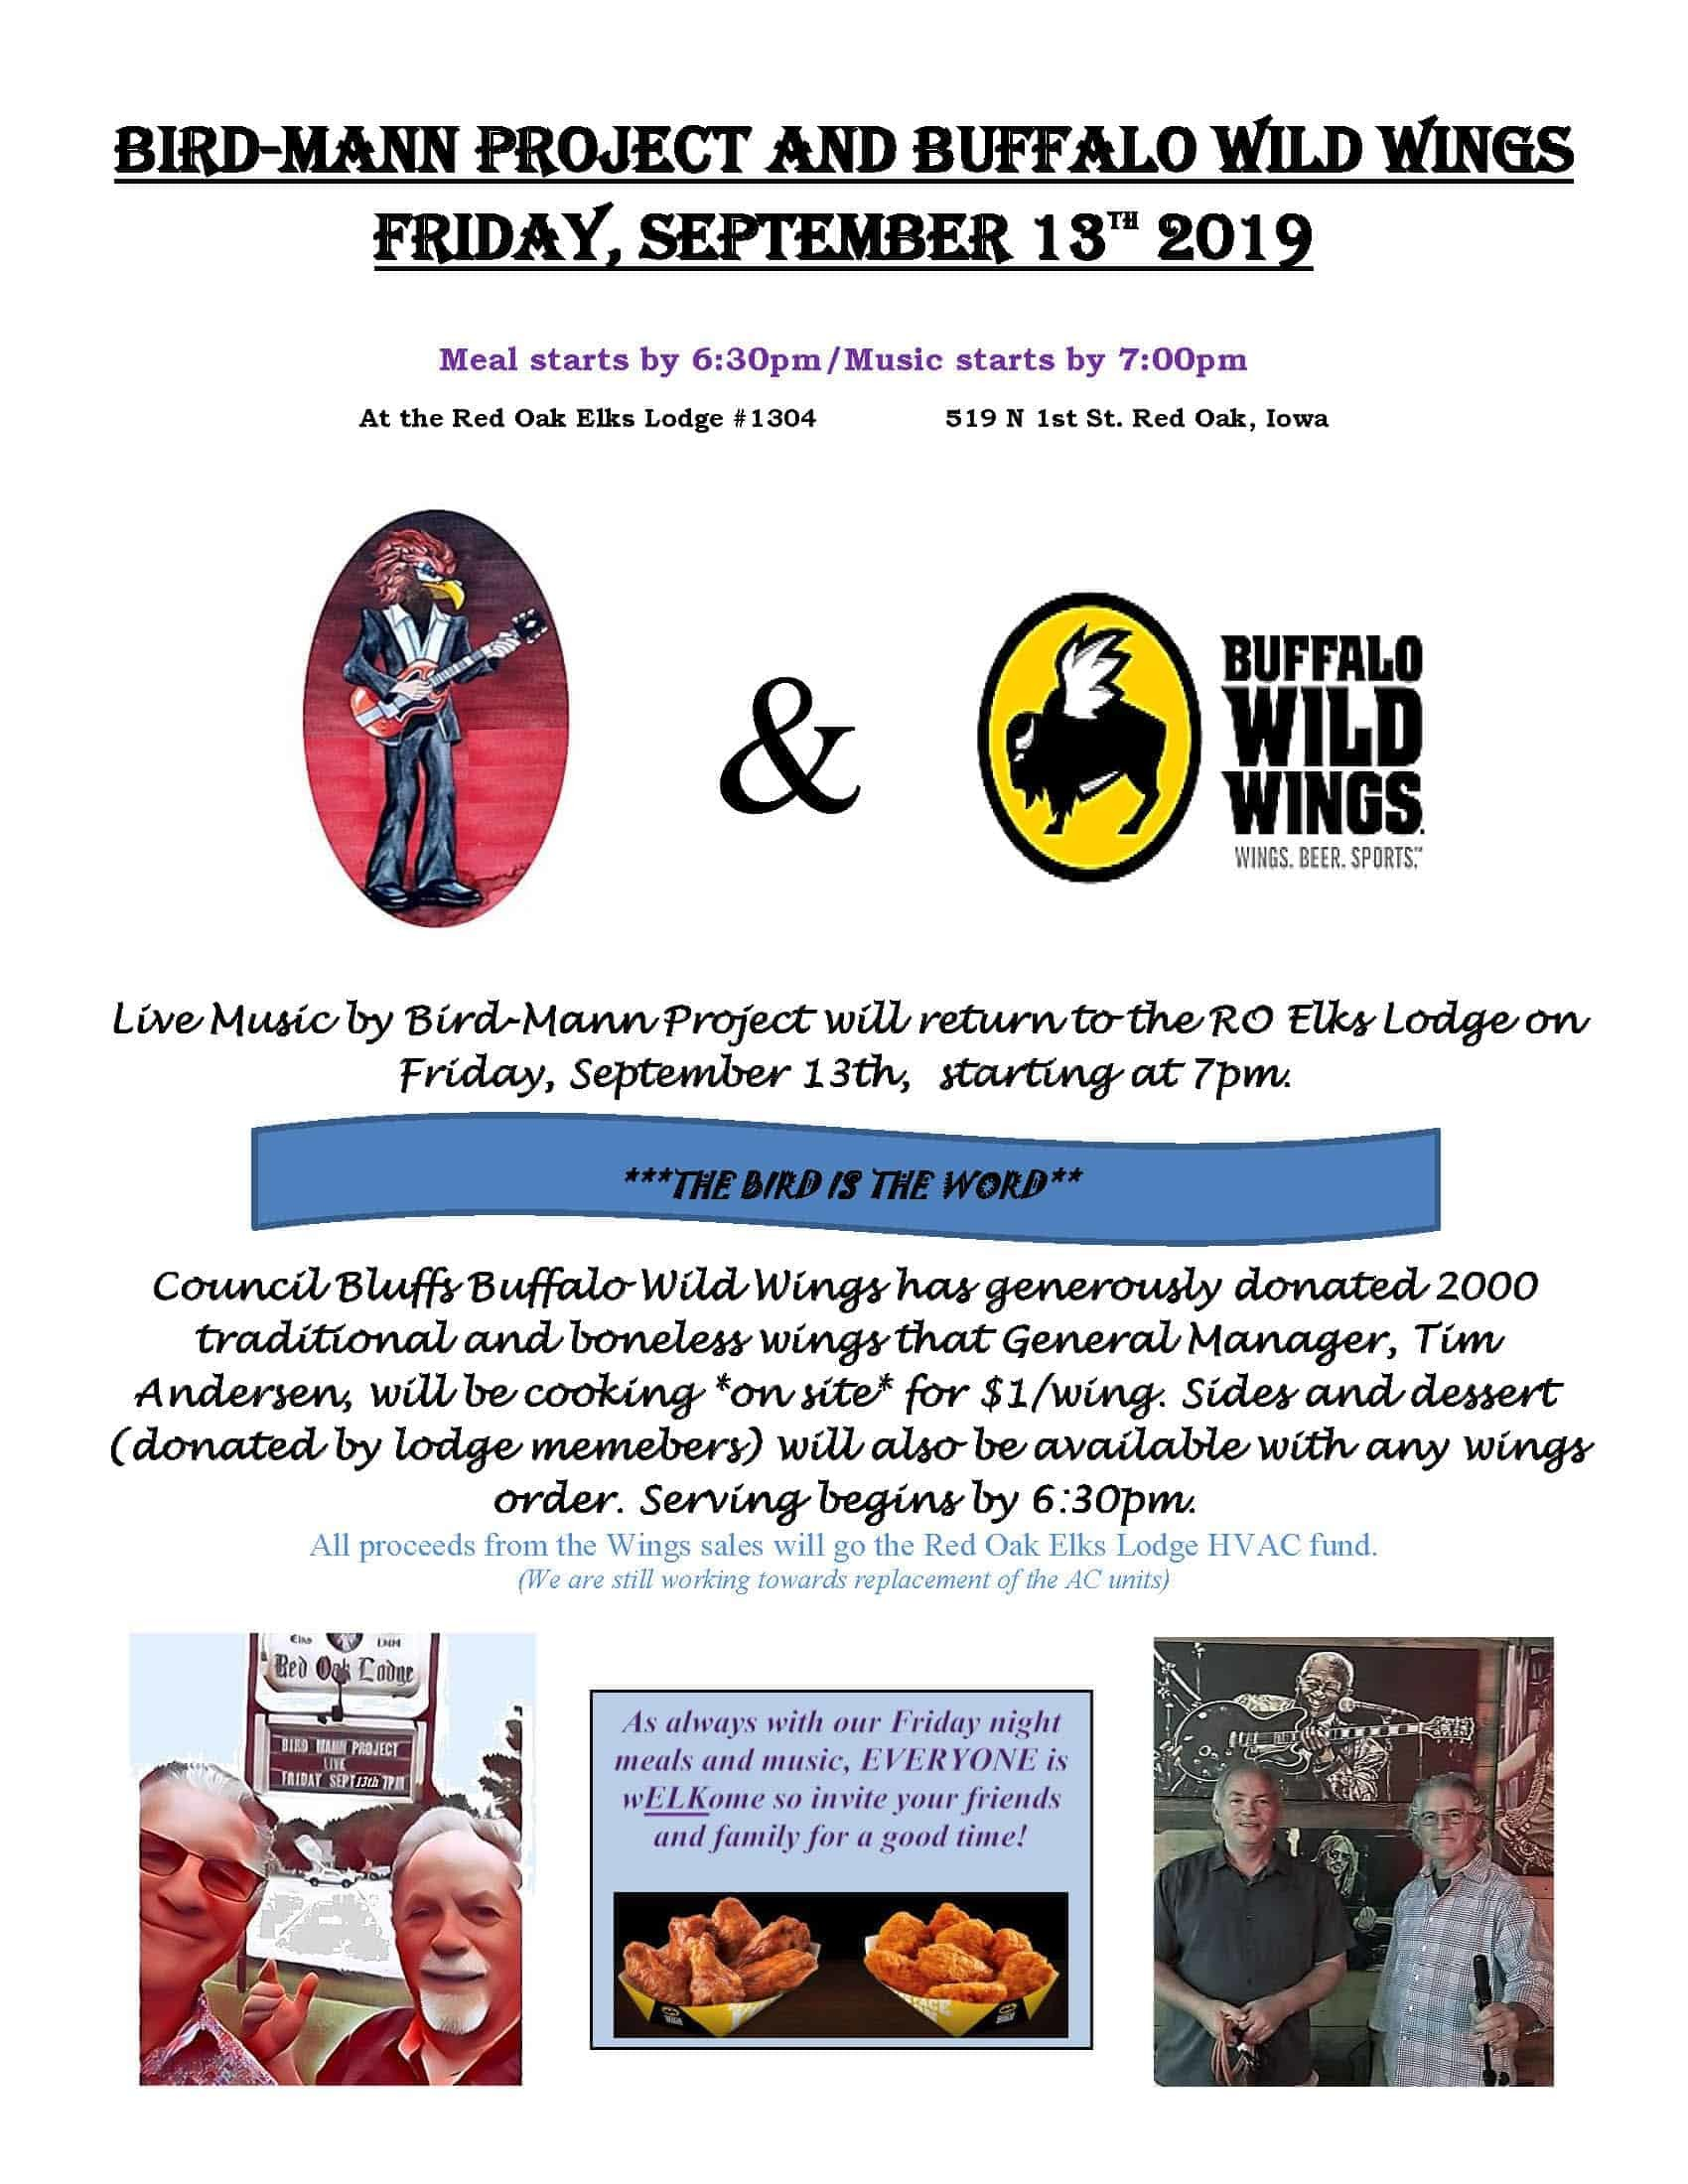 BIRD-MANN PROJECT AND BWW 9-13-19 FLYER